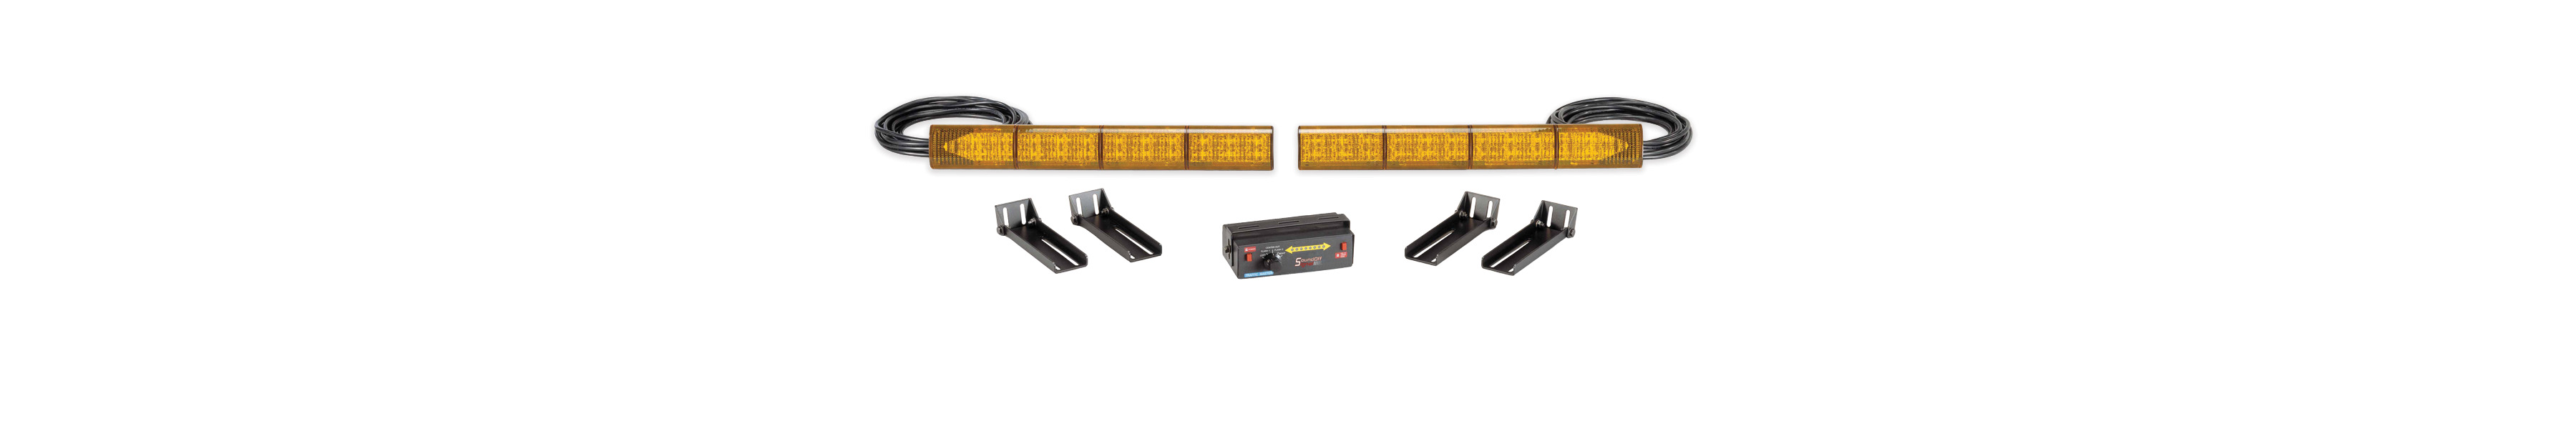 TrafficMaster Exterior Directional Warning Bar Product Image